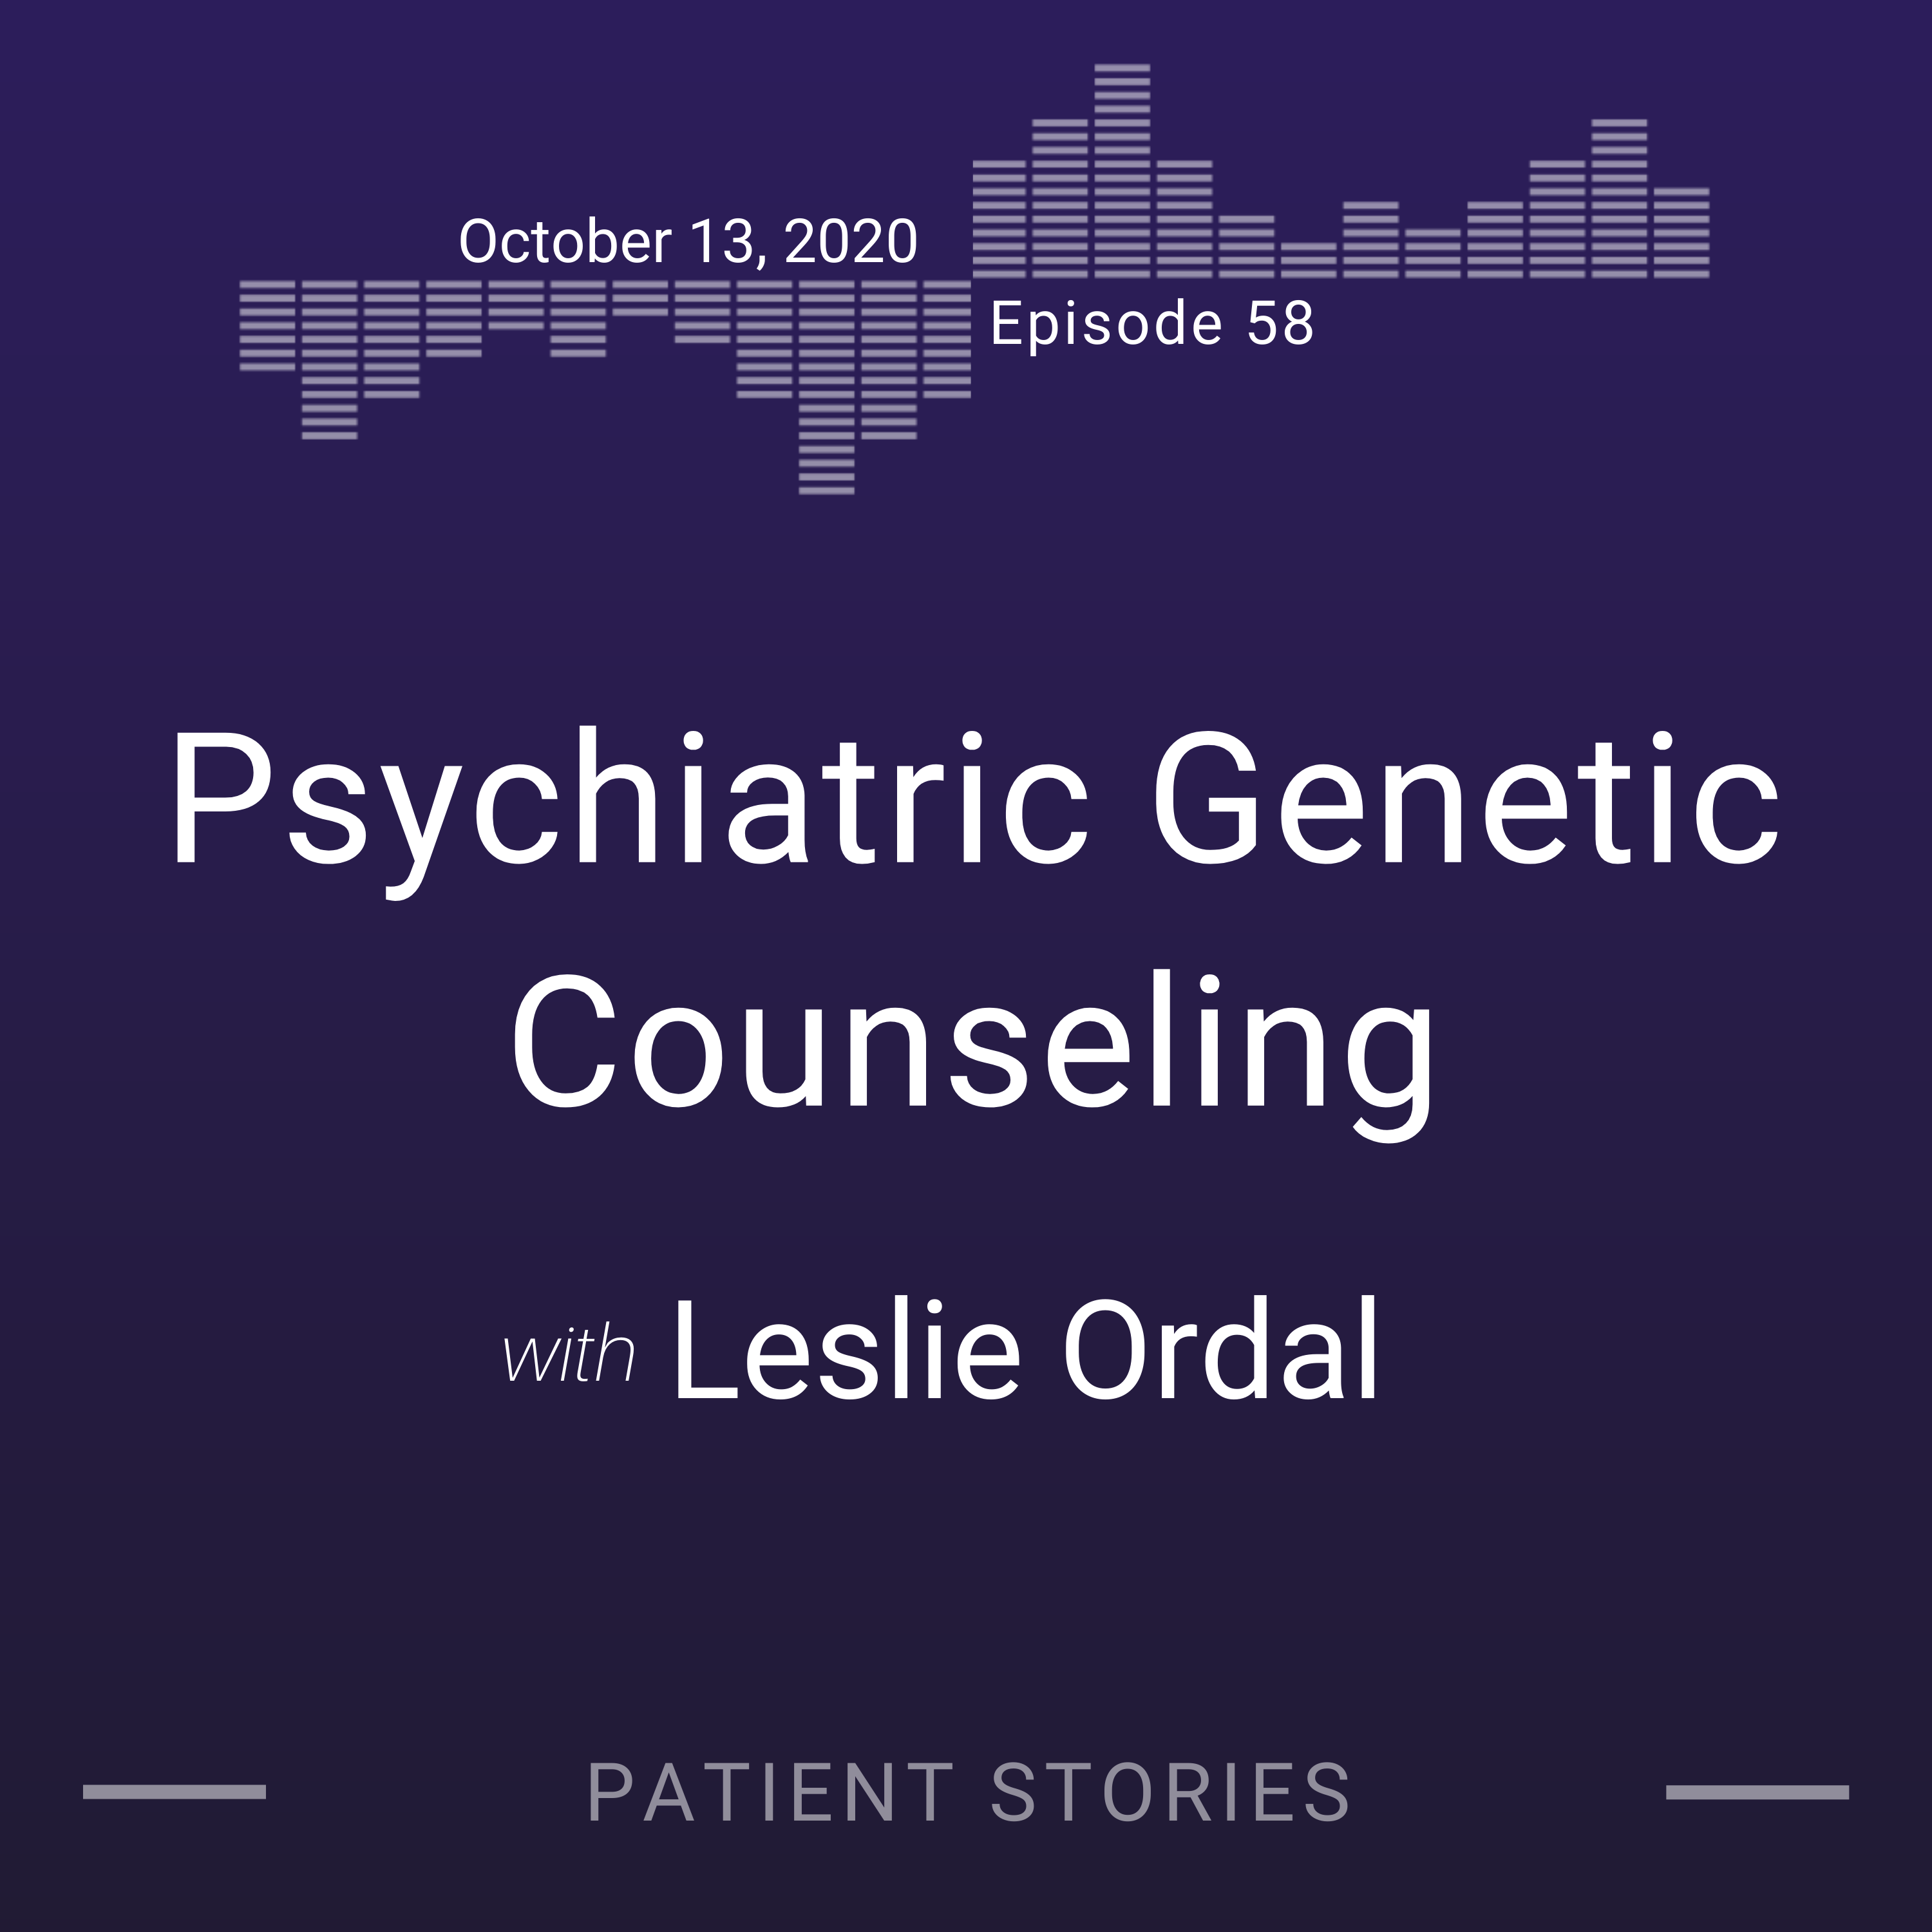 Psychiatric Genetic Counseling